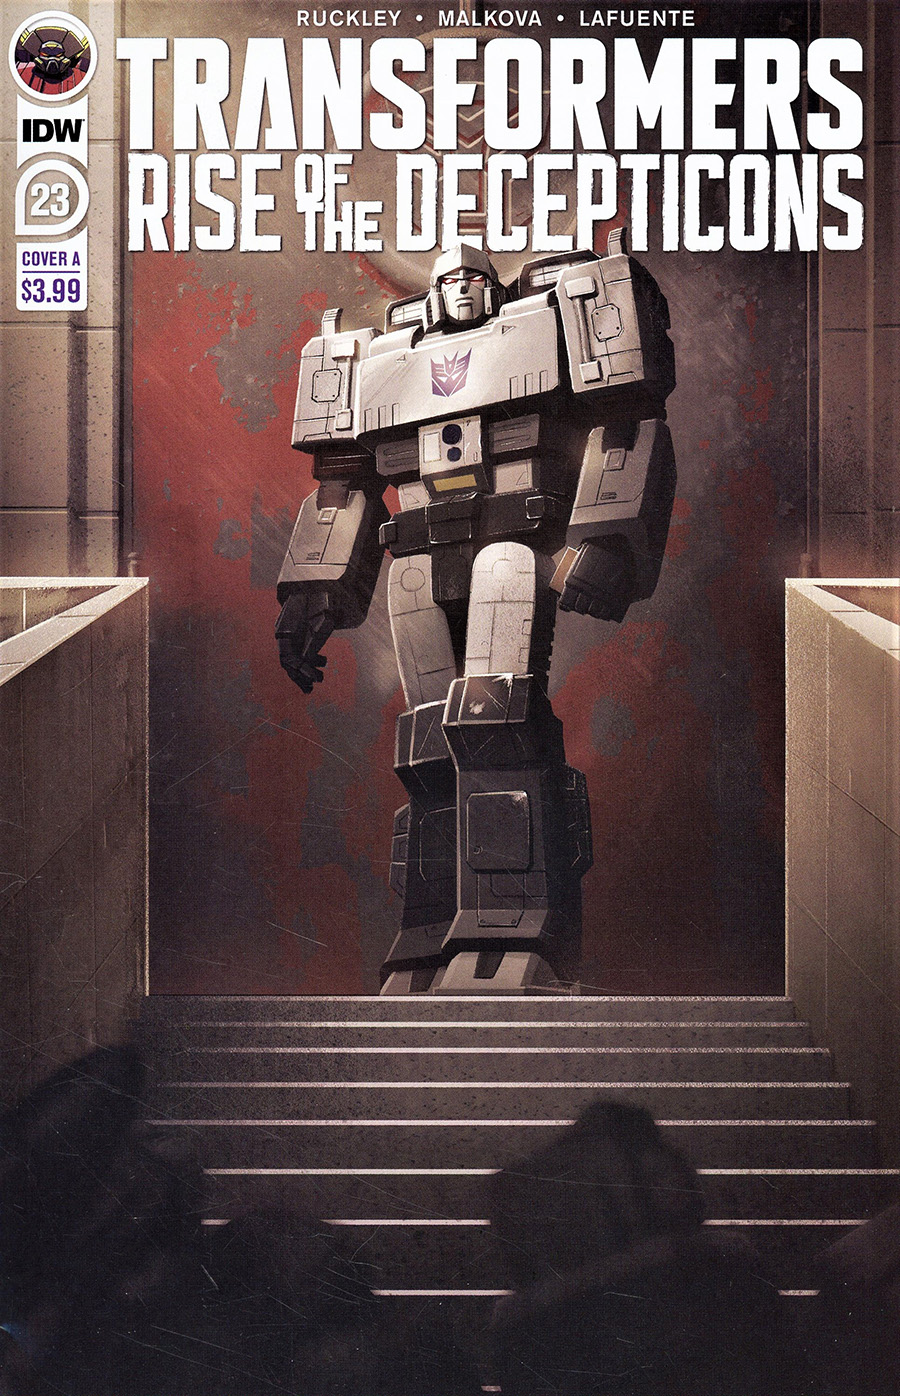 Transformers Vol 4 #23 Cover A Regular Joana Lafuente Cover